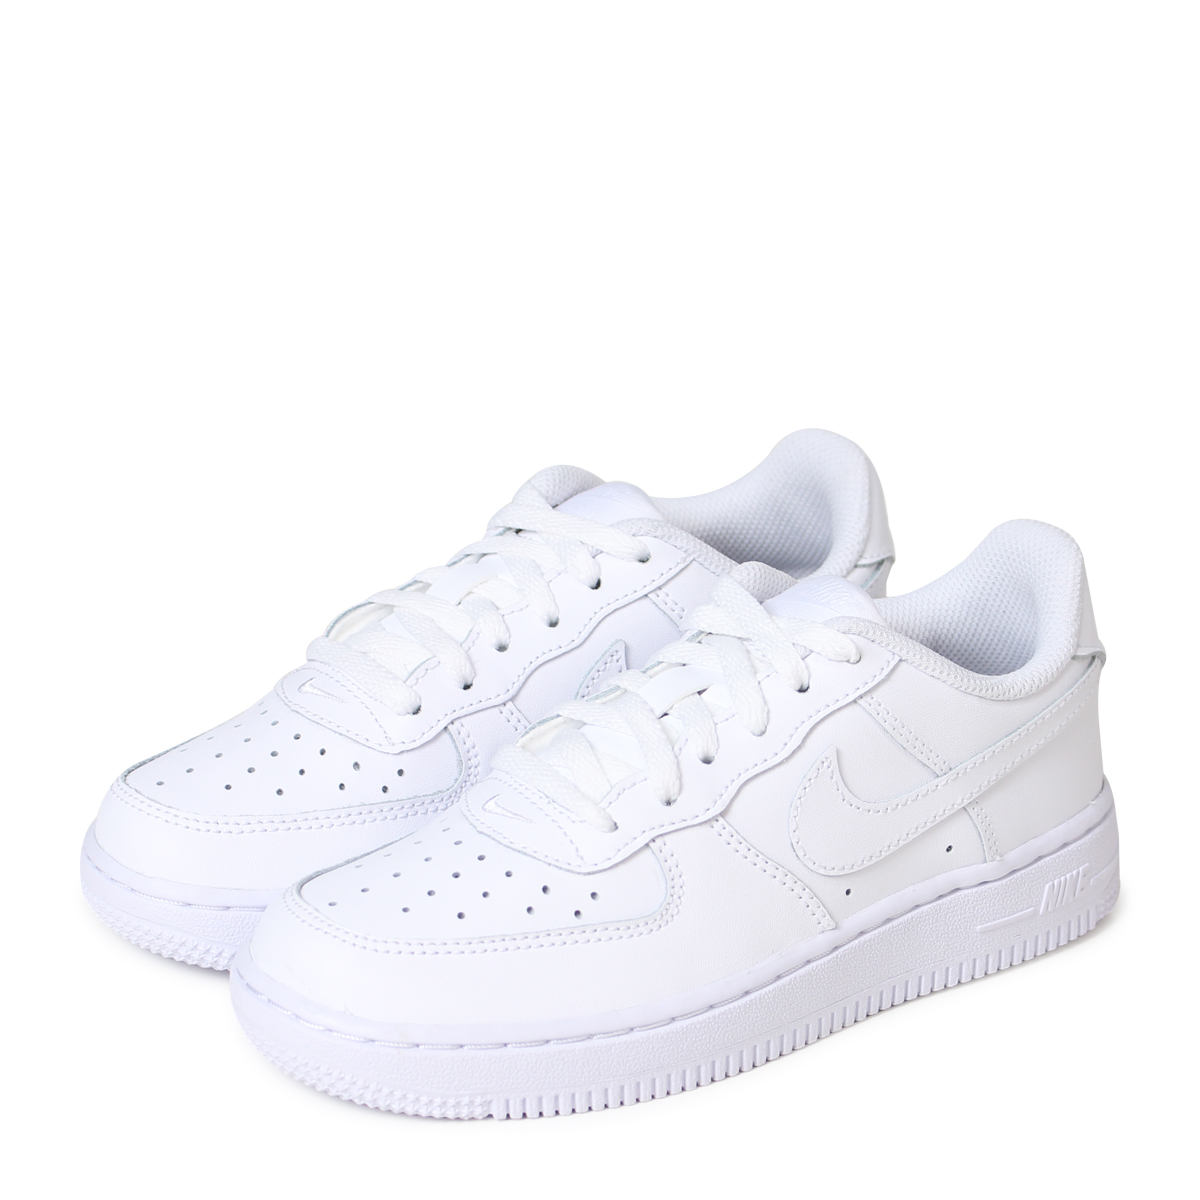 Nike NIKE air force 1 kids sneakers AIR FORCE 1 PS 314,193 117 white white [213 reentry load]